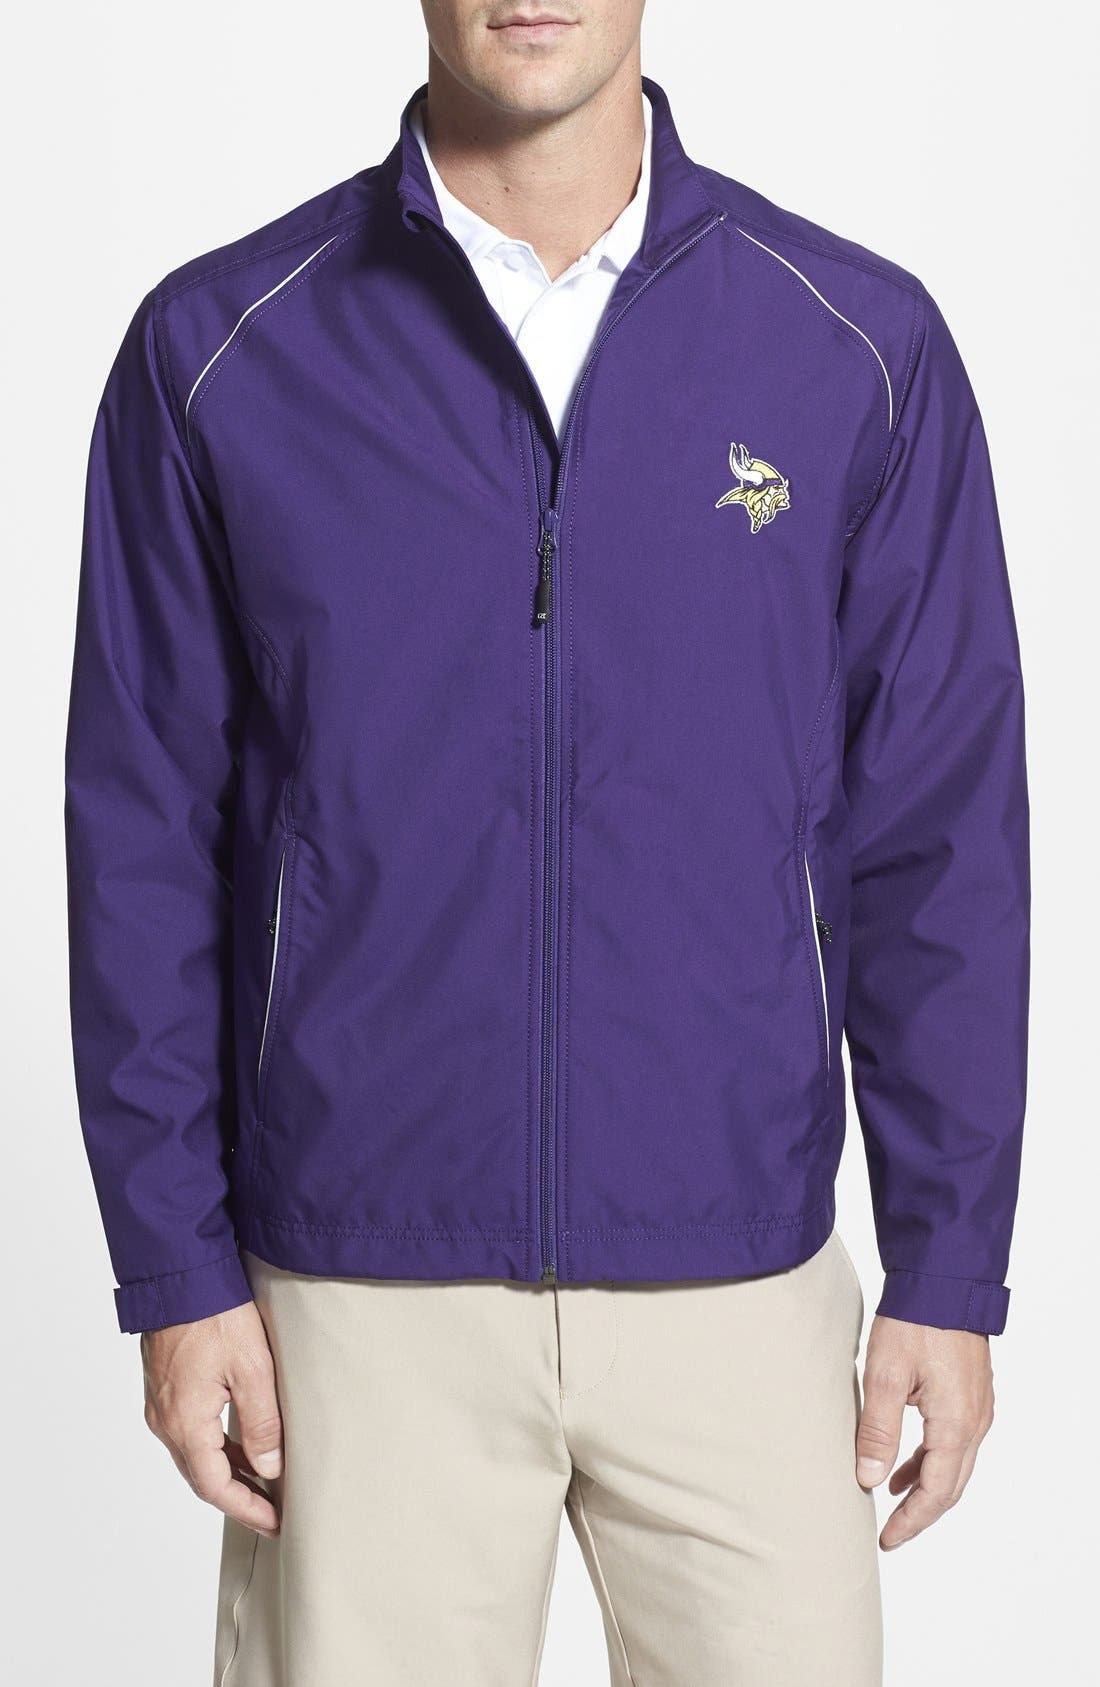 Cutter & Buck Minnesota Vikings - Beacon WeatherTec Wind & Water Resistant Jacket